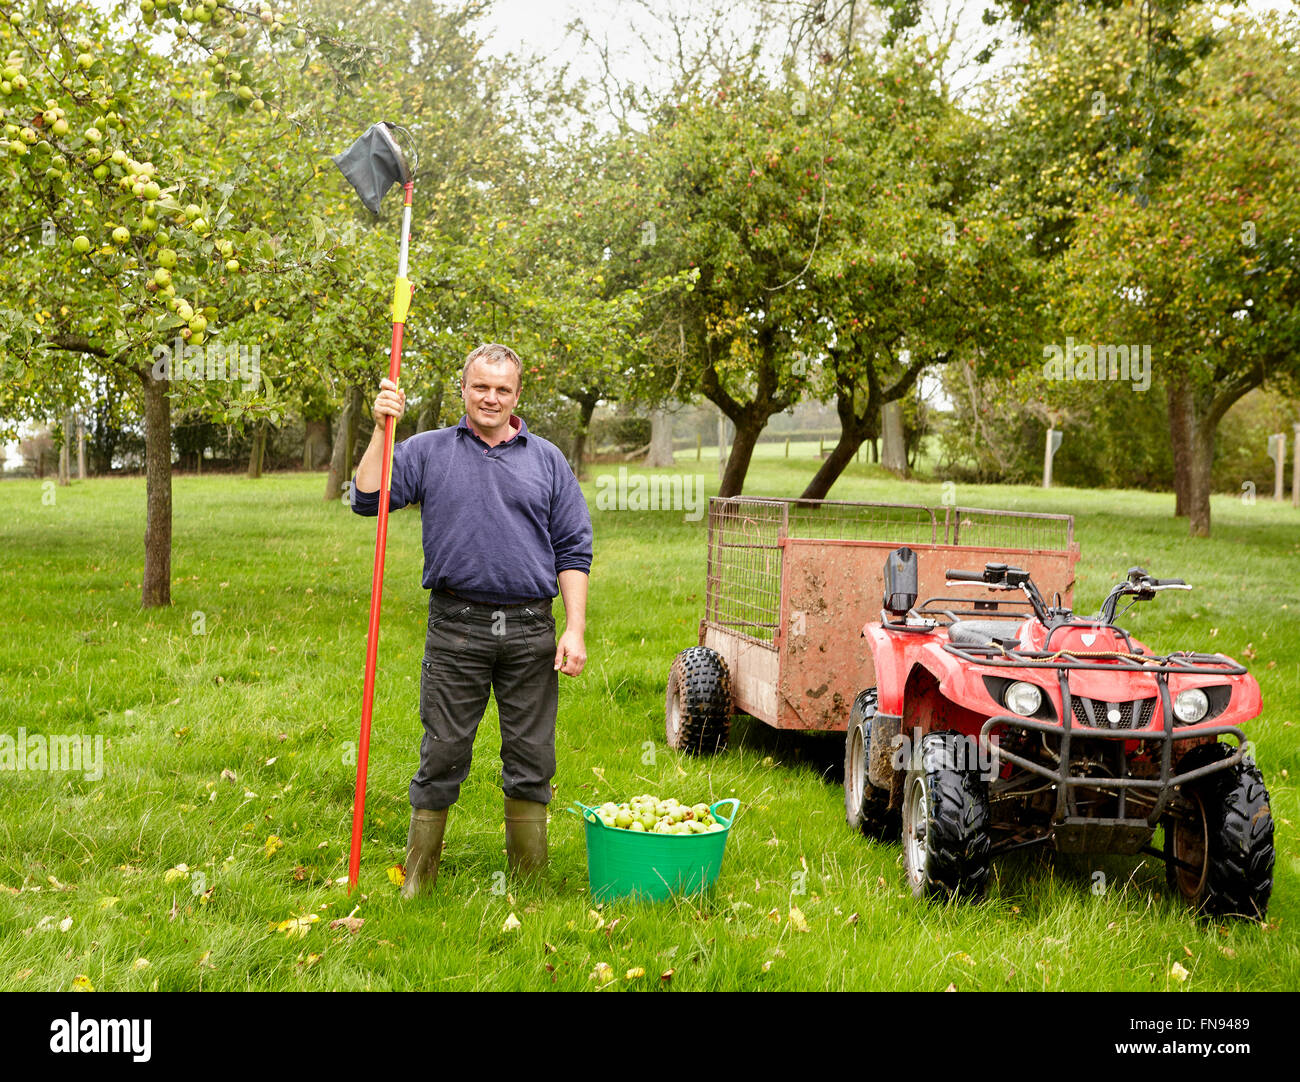 A man standing in an orchard with a long handled apple picker with net at harvest time. - Stock Image